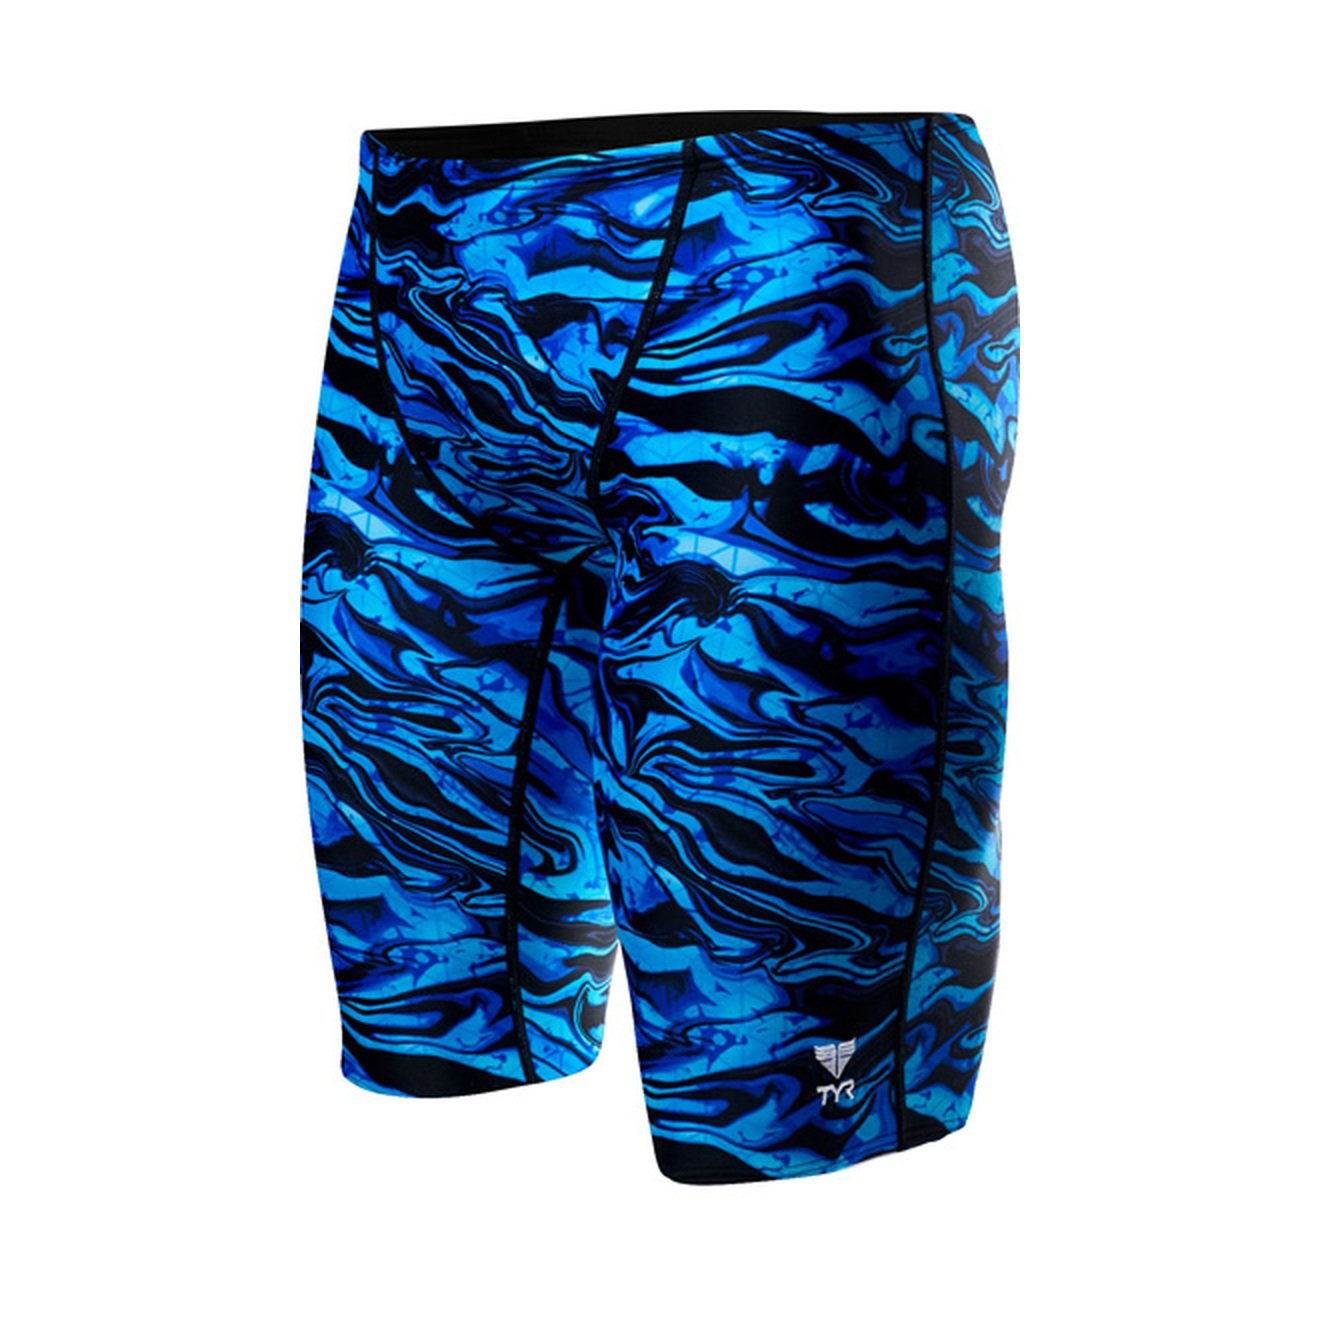 TYR Men's Miramar Jammer Swimsuit, Blue, 36